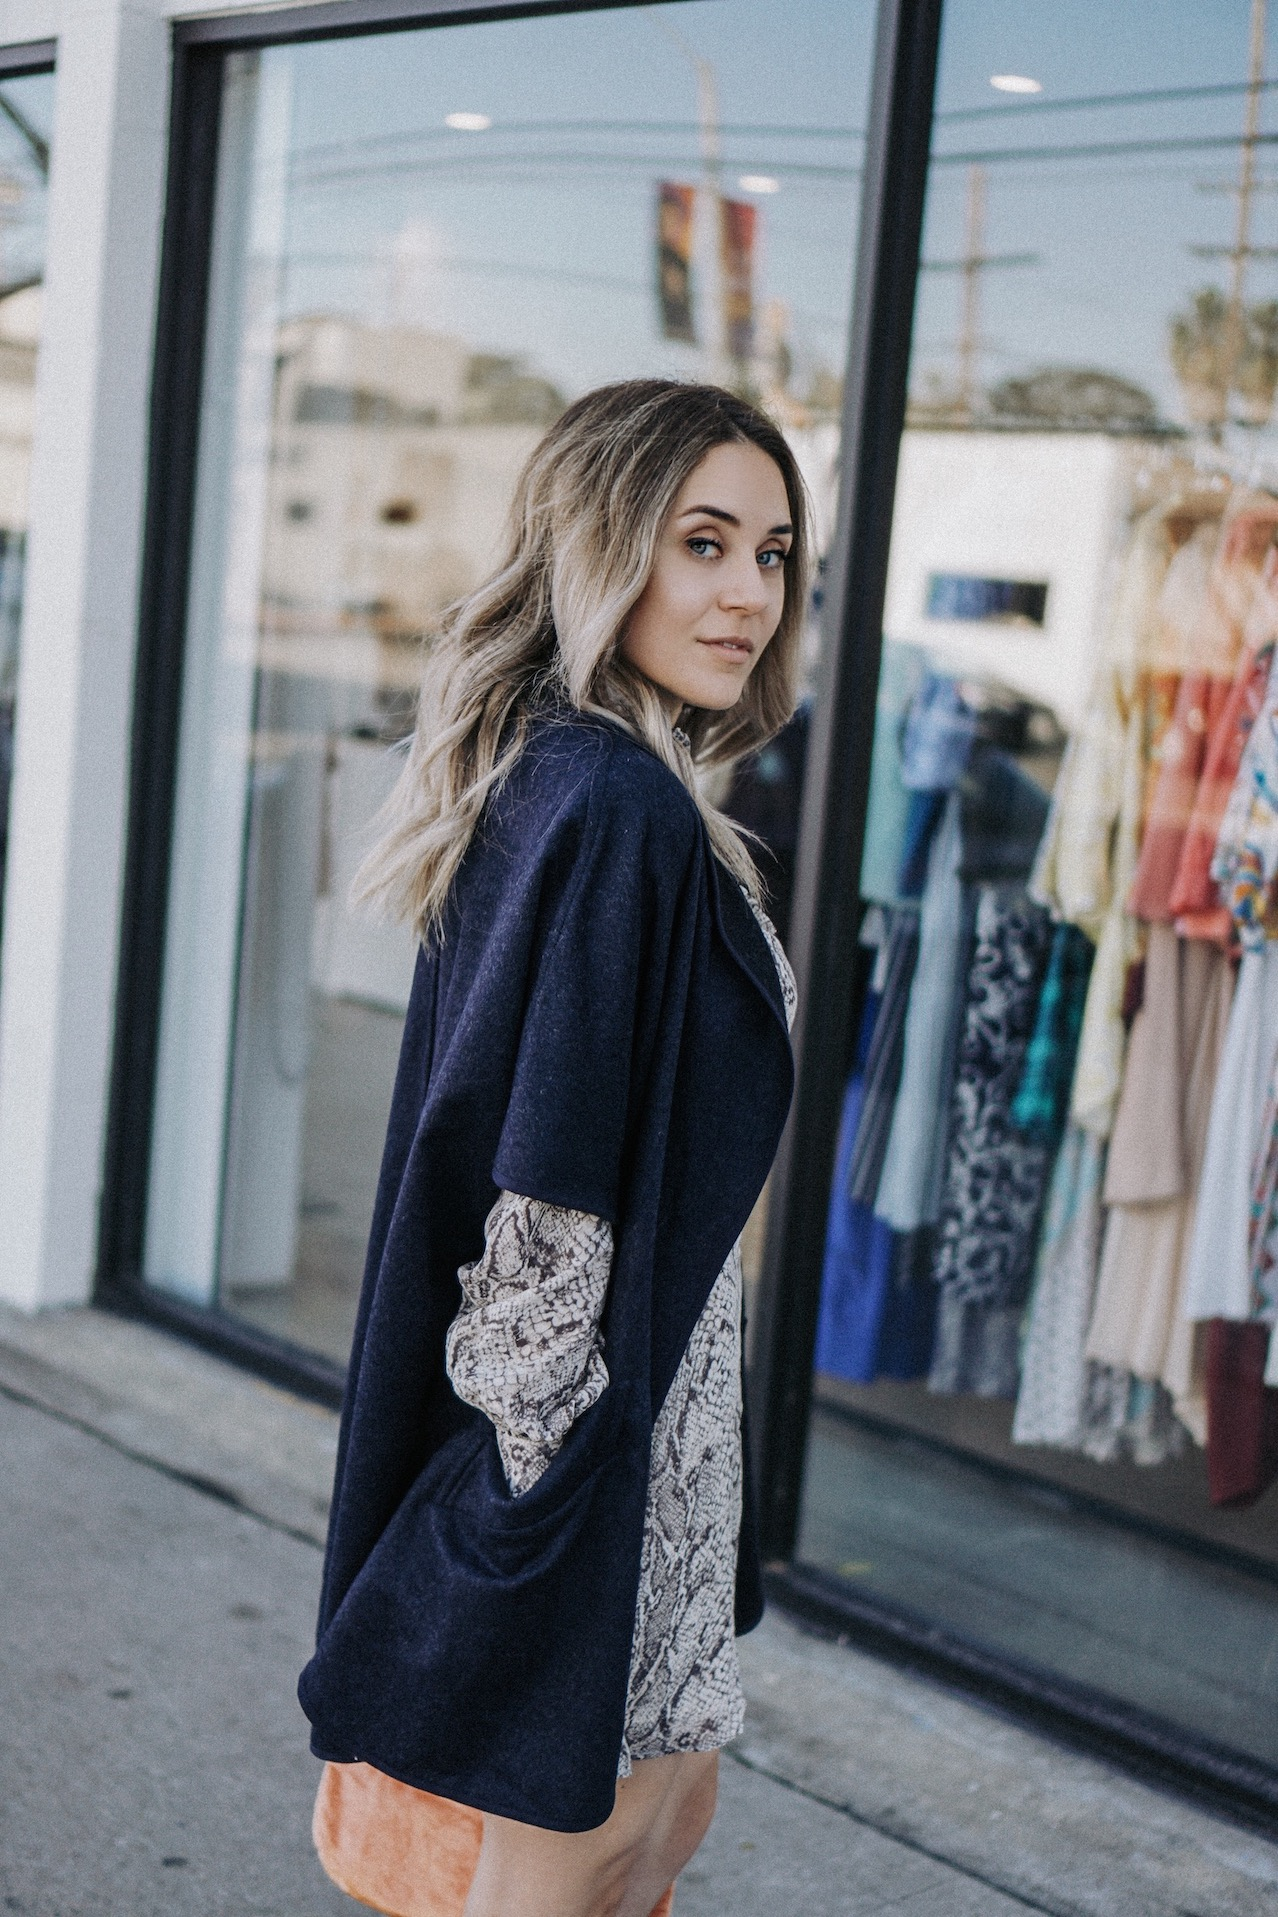 Cute layered outfit // A Week Of Uncompromising Sustainable Style With Sonia Kessler From Native Styling on The Good Trade